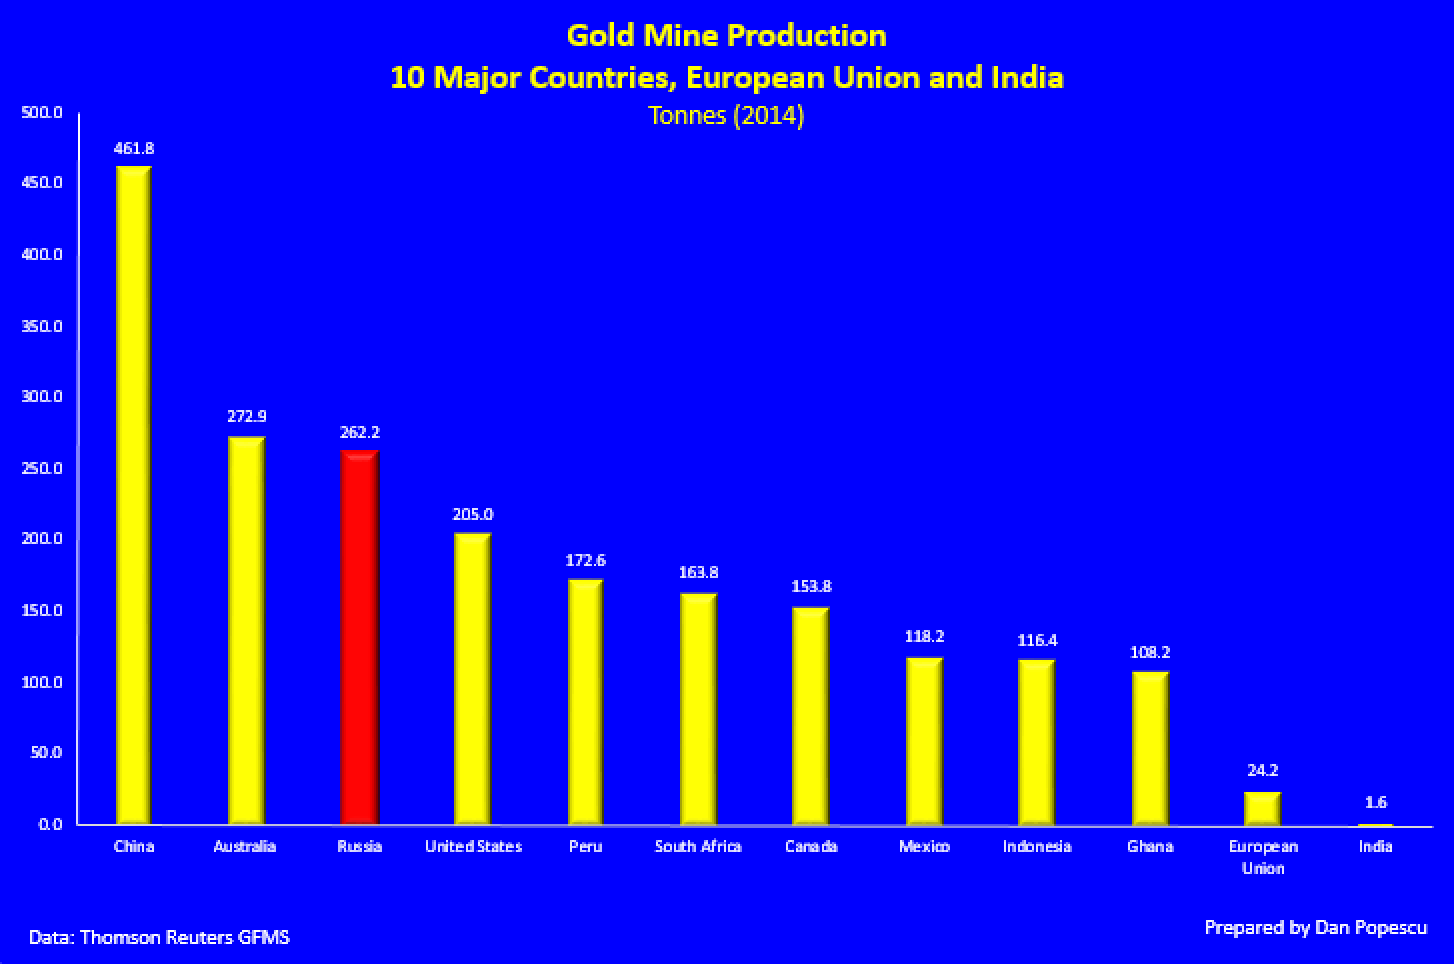 Gold Mine production 10 major countries